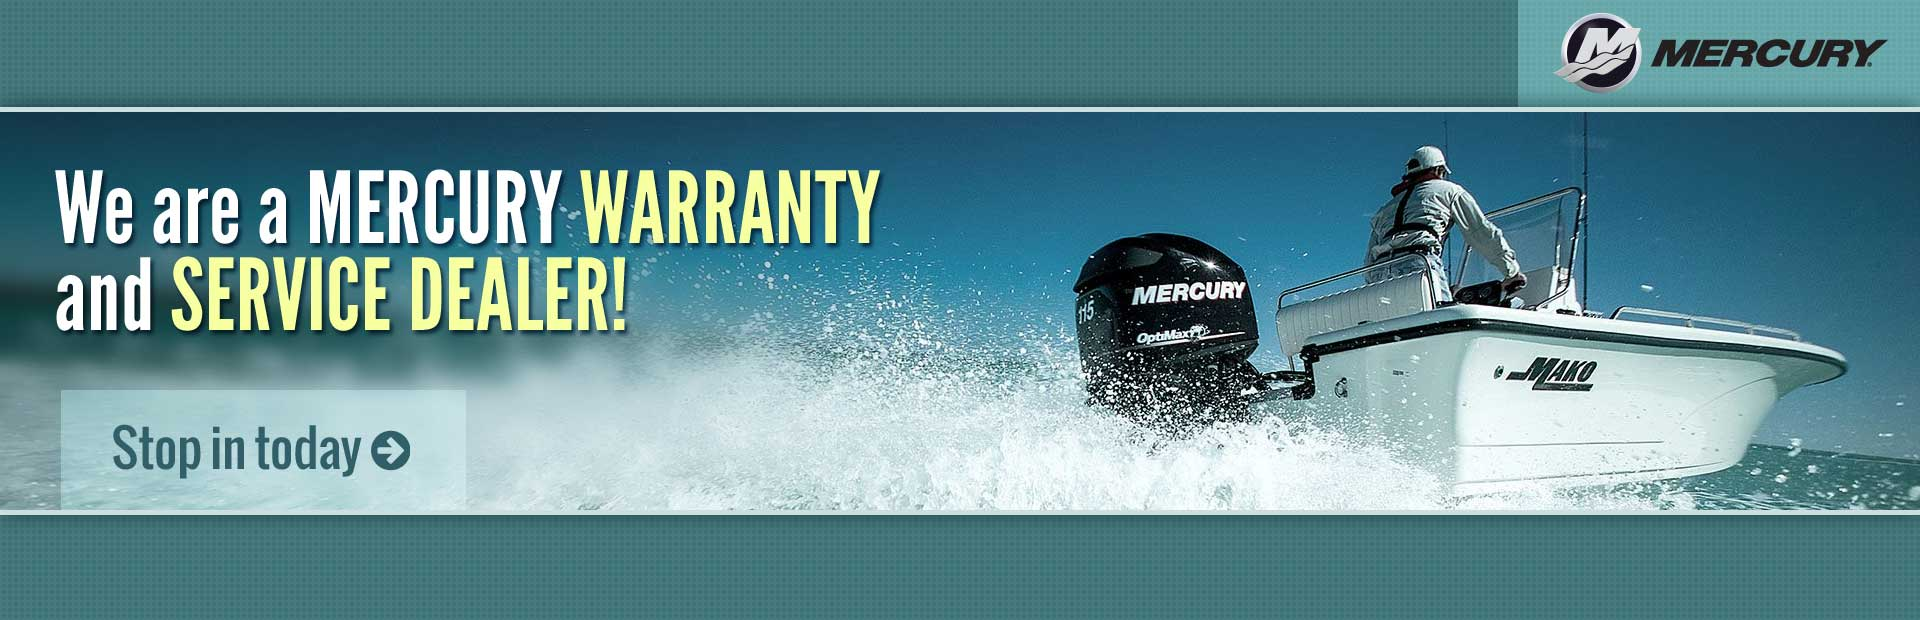 We are a Mercury warranty and service dealer! Contact us for details.